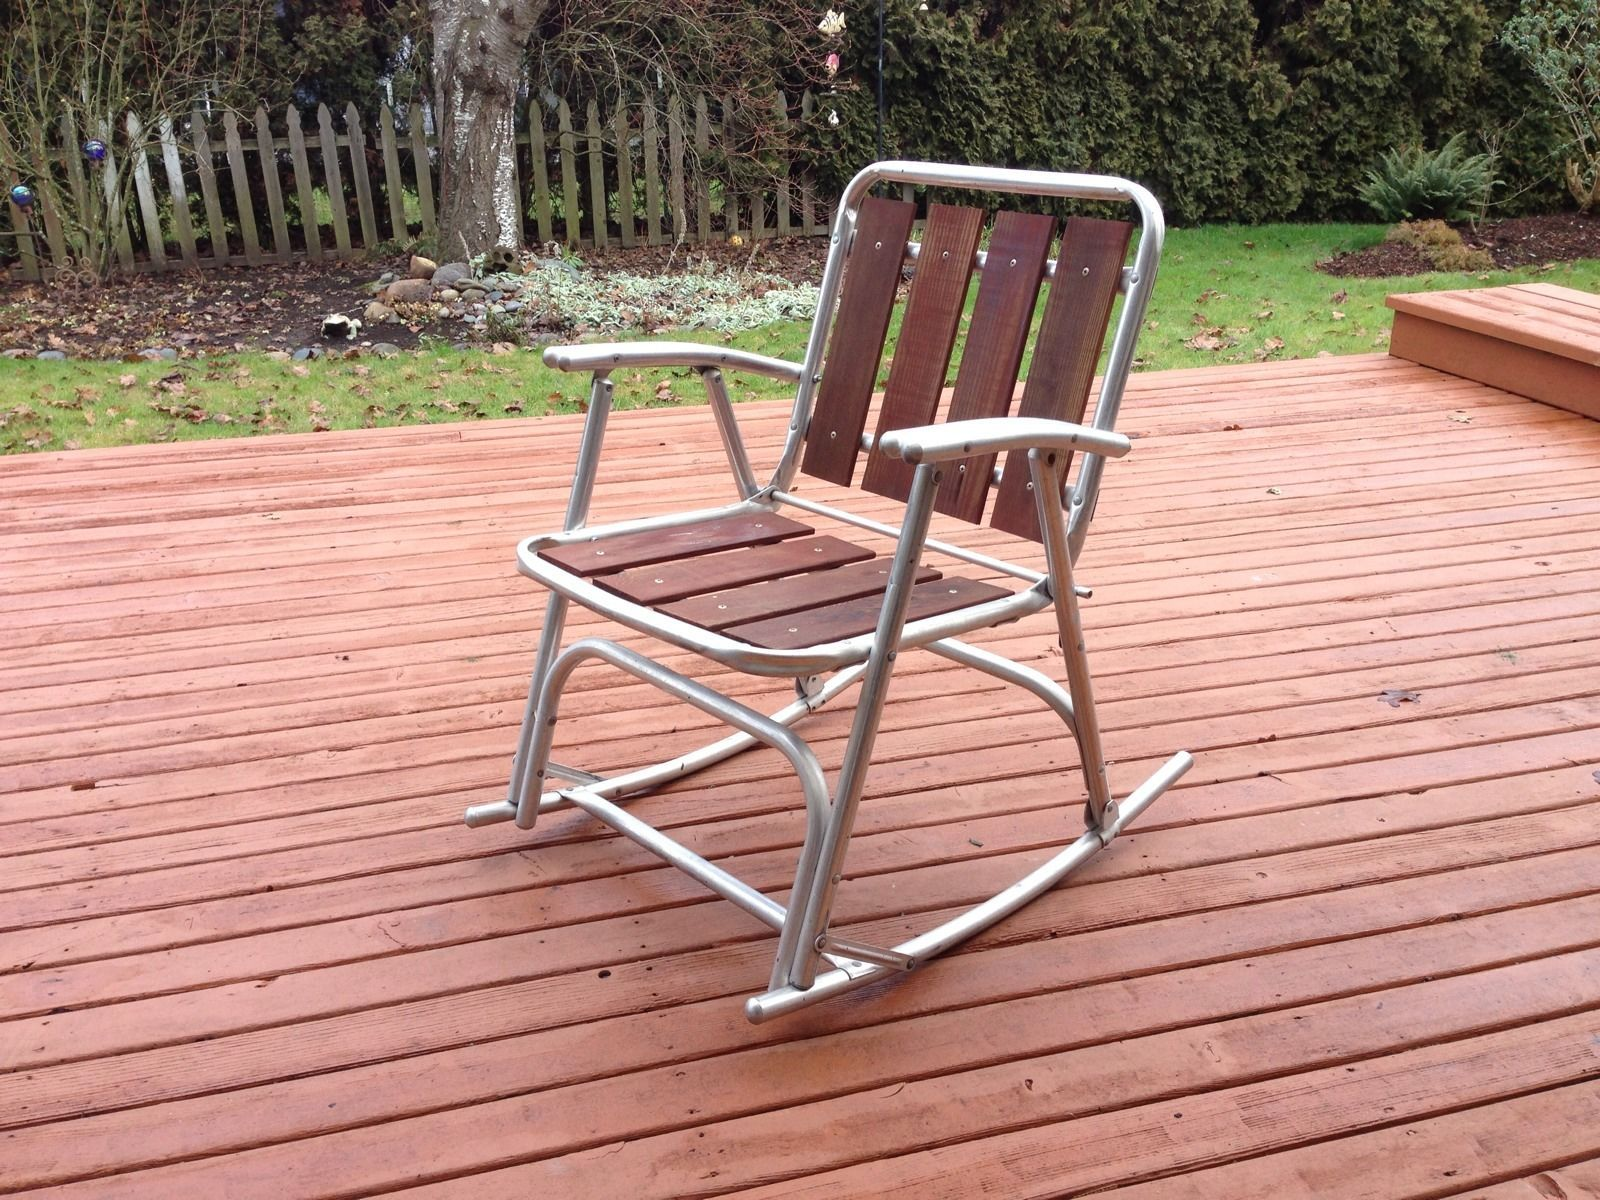 1 VTG Redwood Aluminum Outdoor Patio Porch Lawn Rocking Chairs